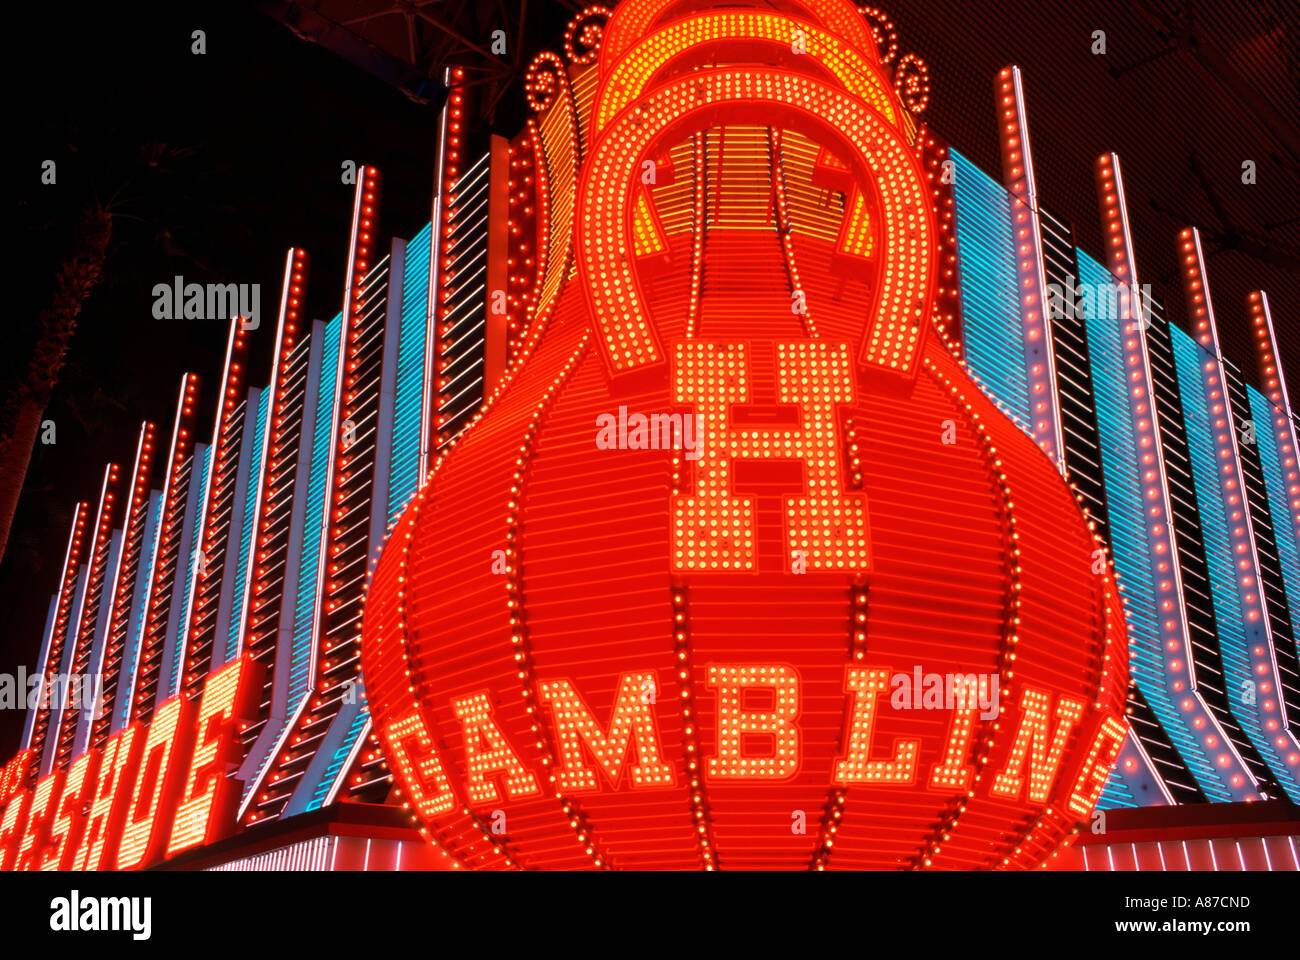 Gambling sign in neon lights outside the Horseshoe Hotel and Casino Las Vegas Nevada - Stock Image